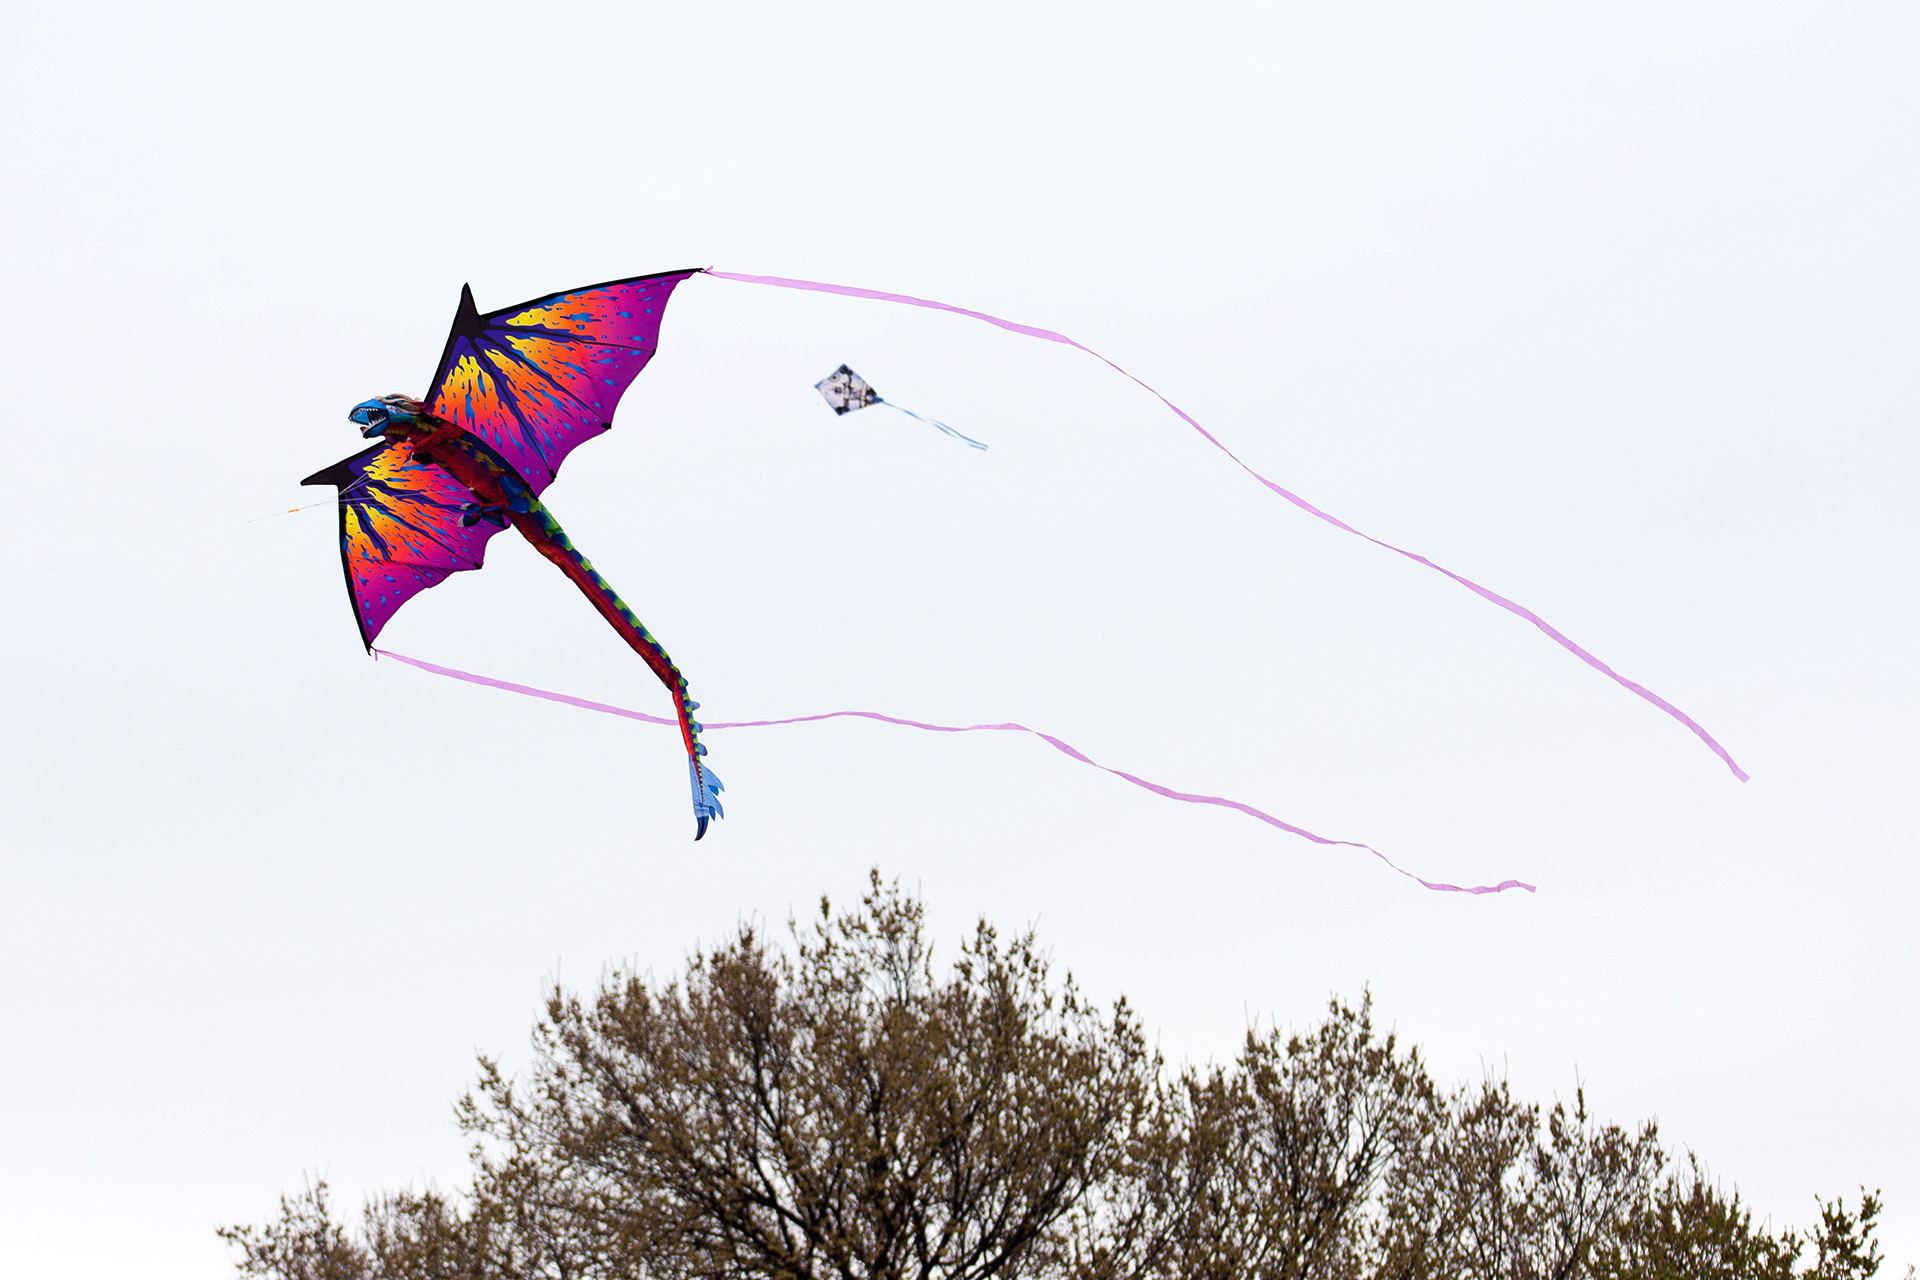 Dragon kite, Kite Festival.